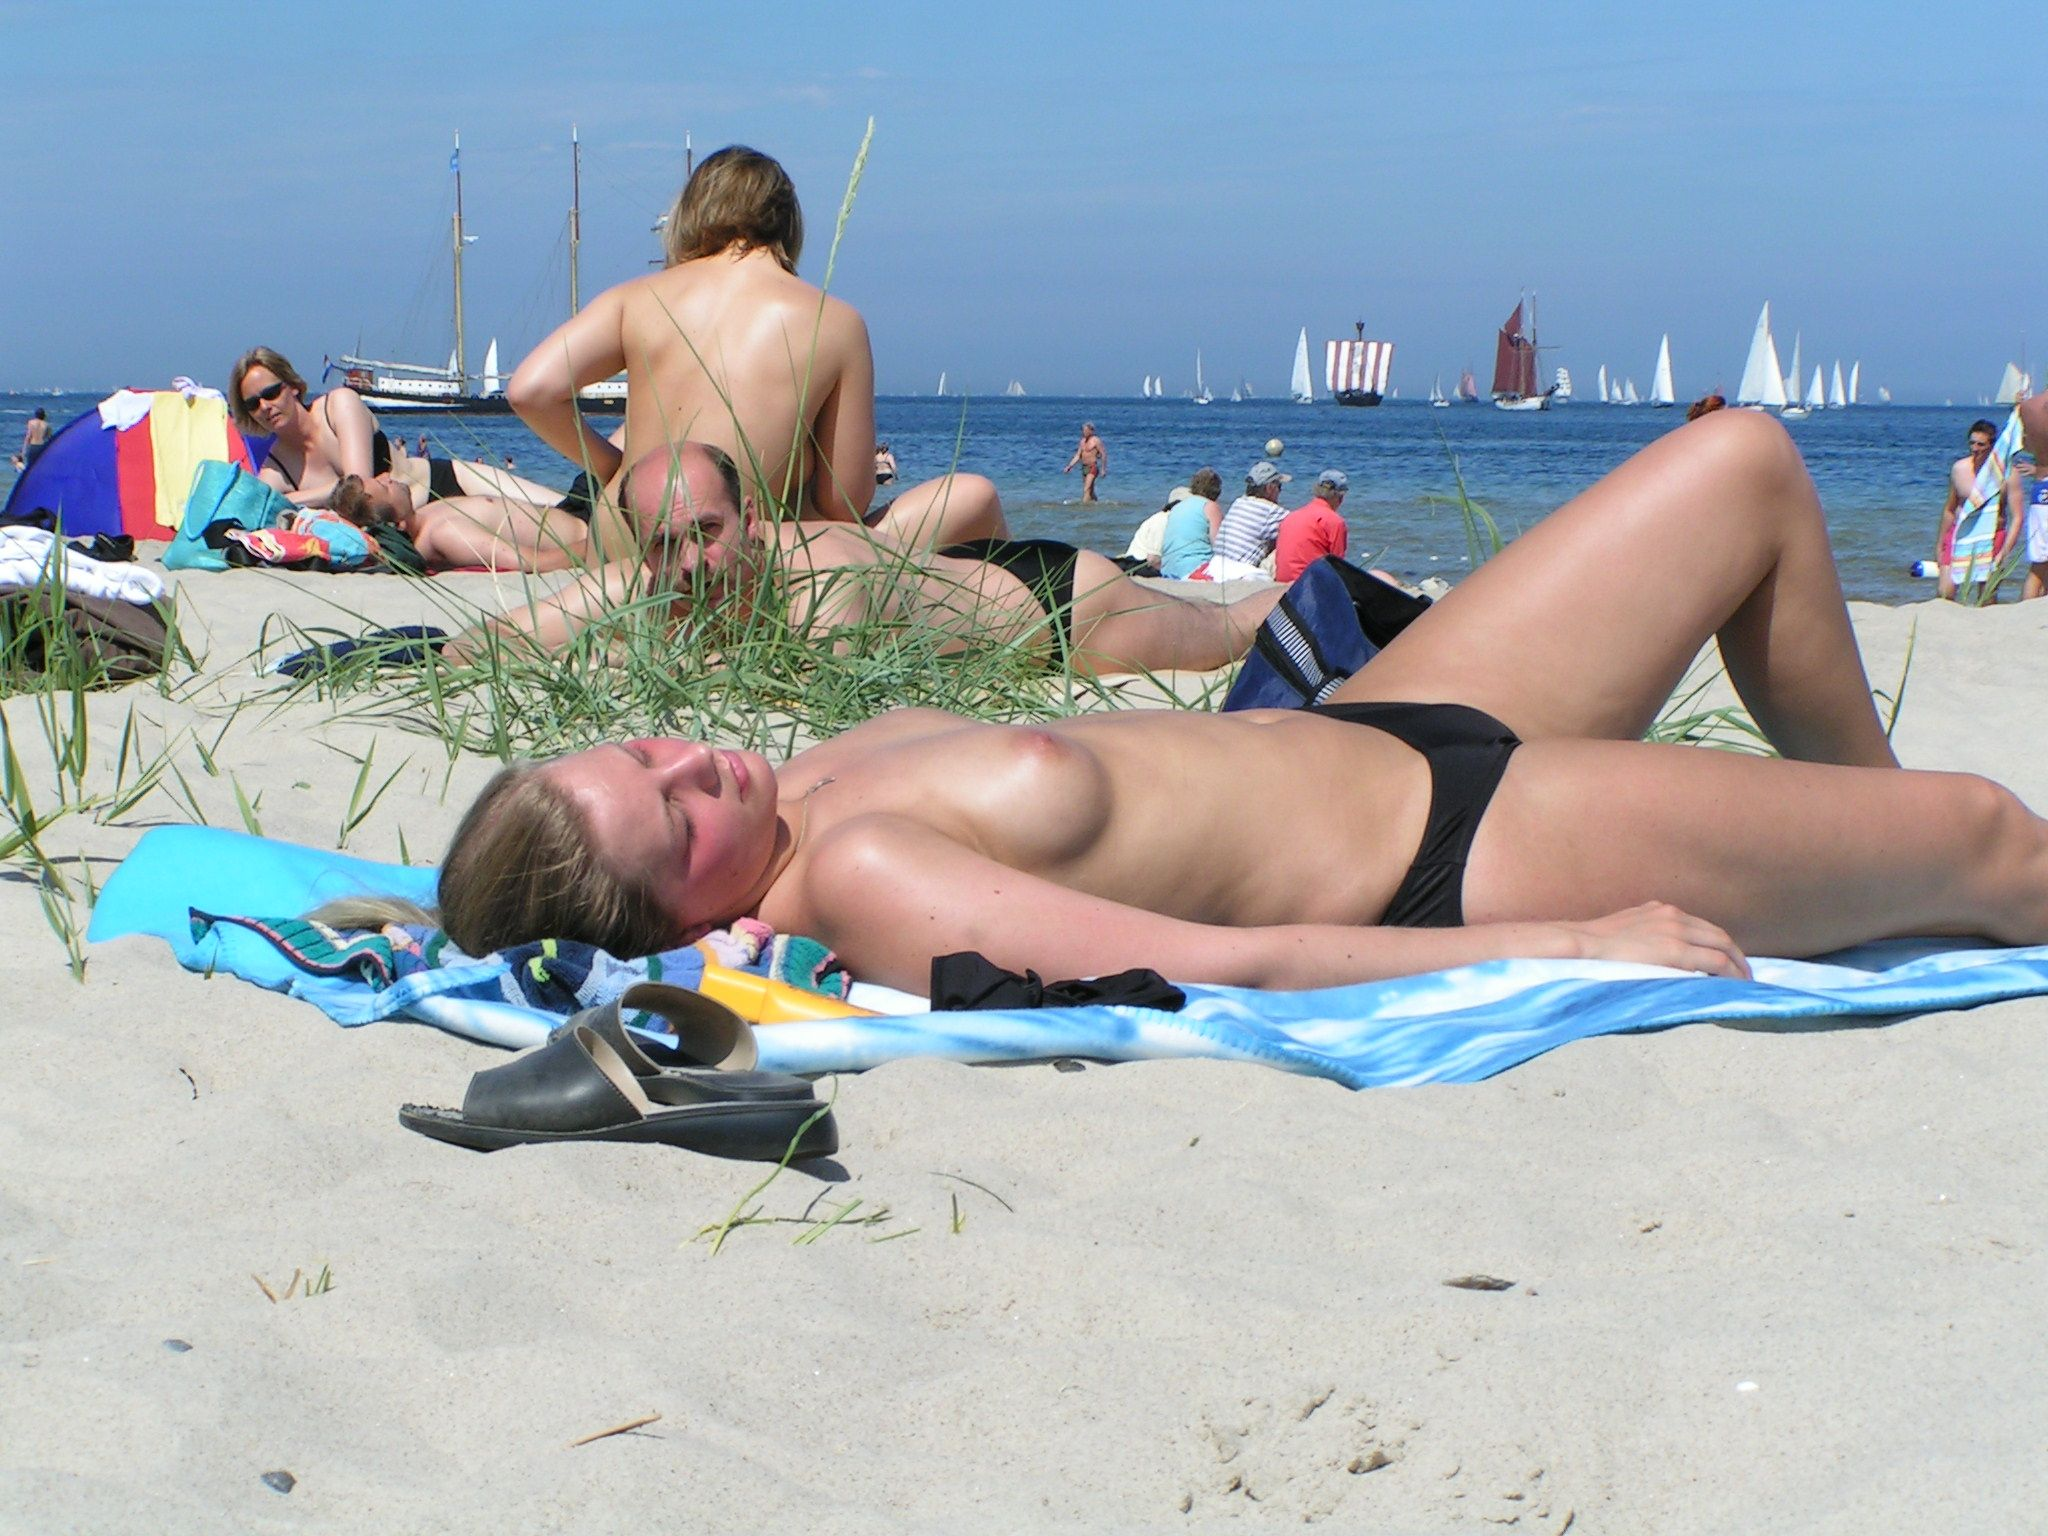 Blonde suntanning topless on a public beach